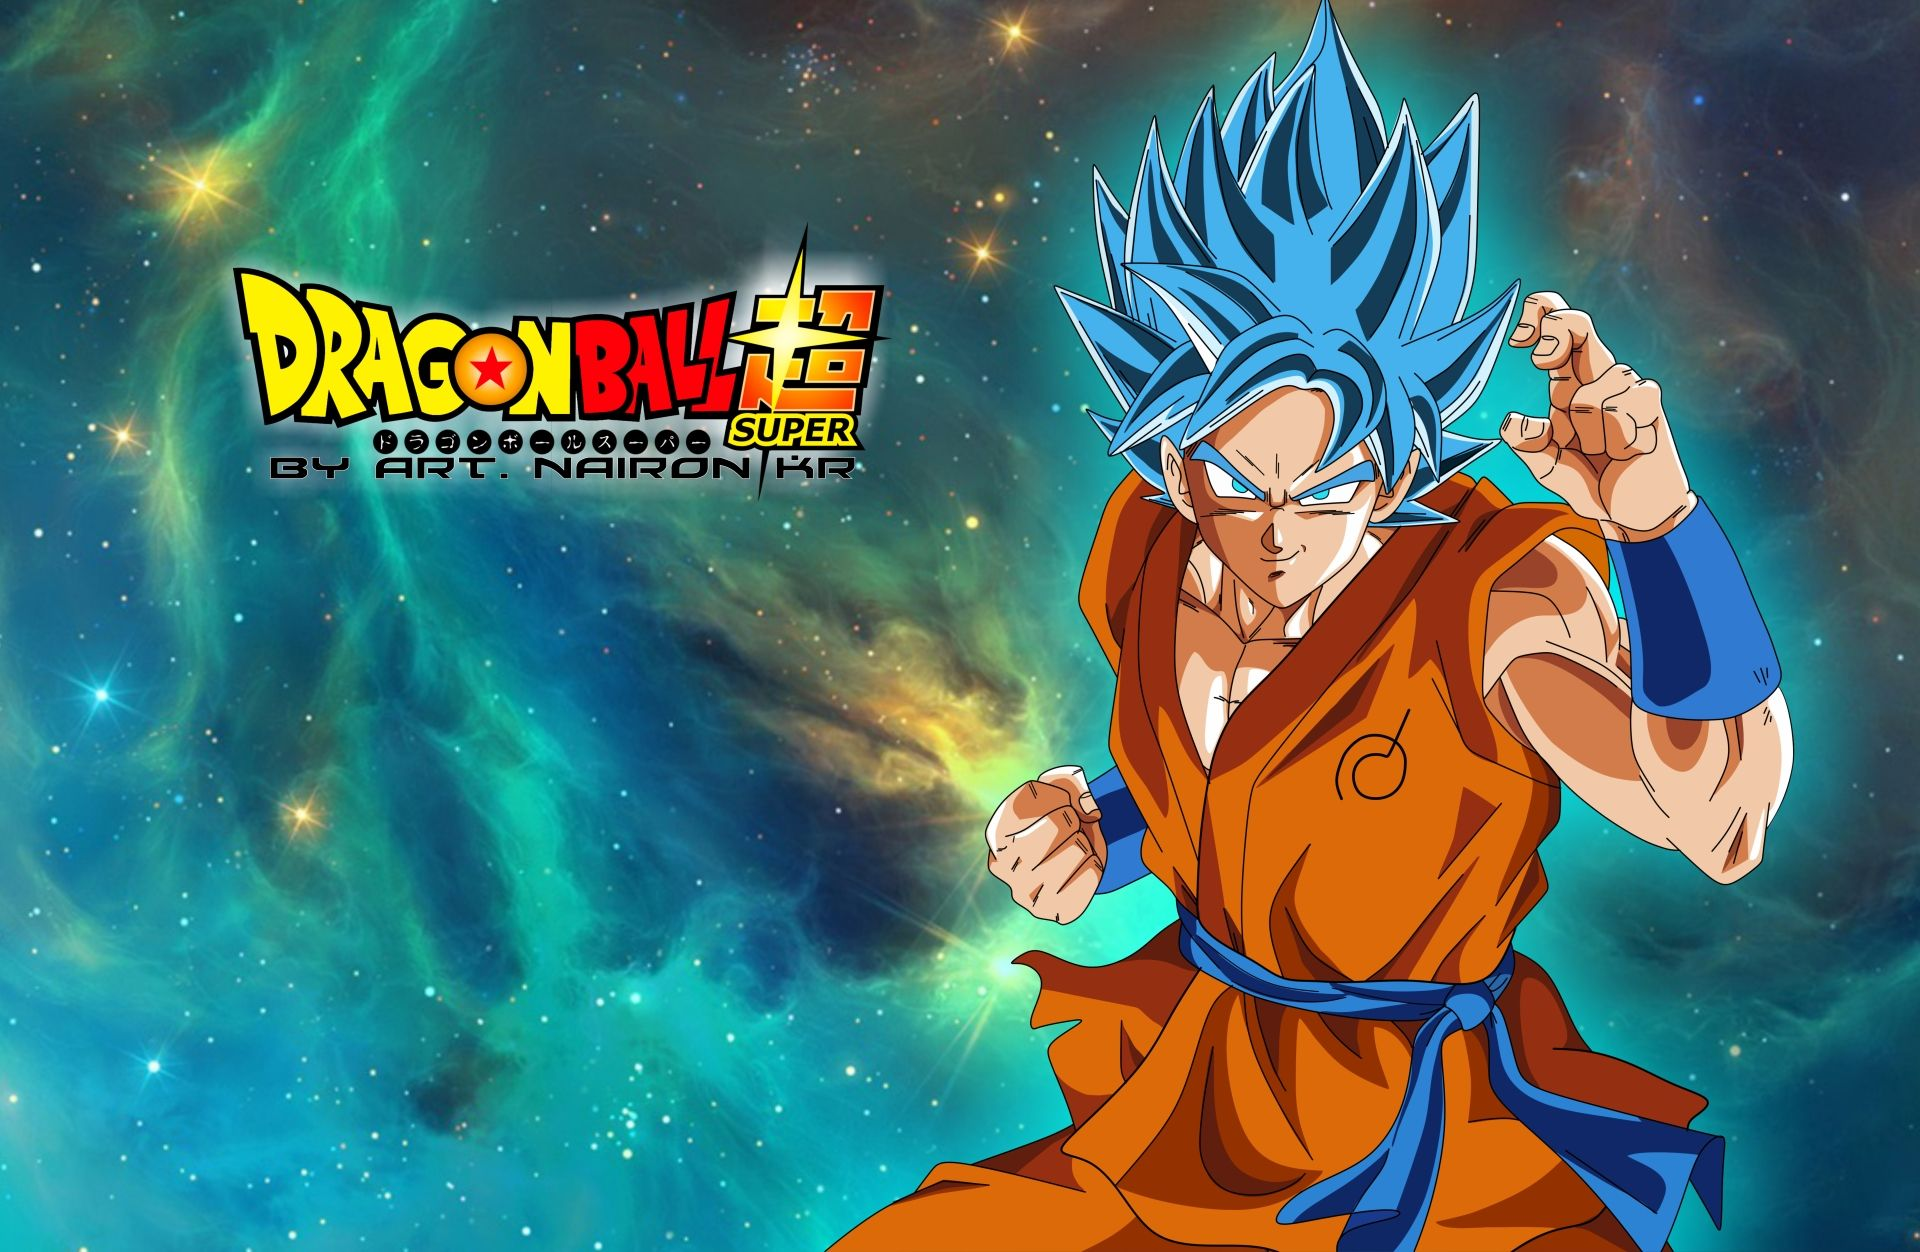 10 Top Dragon Ball Super Desktop Wallpaper Full Hd 1080p For Pc